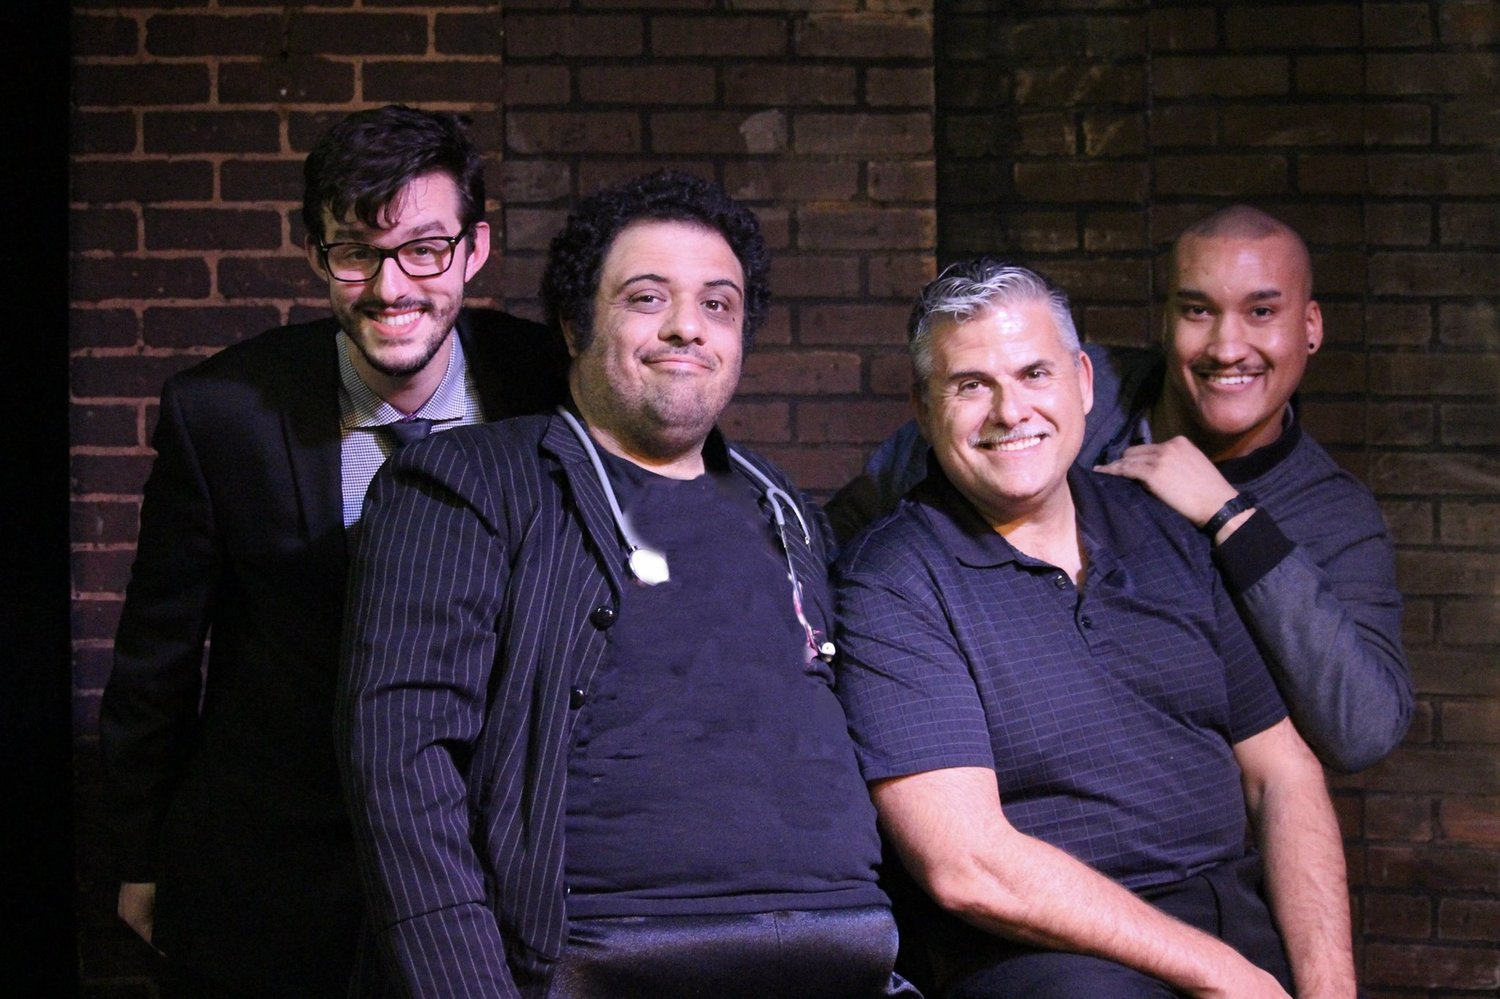 BWW Review: PENIS MONOLOGUES IS IMPRESSIVE at Carrollwood Players Theatre